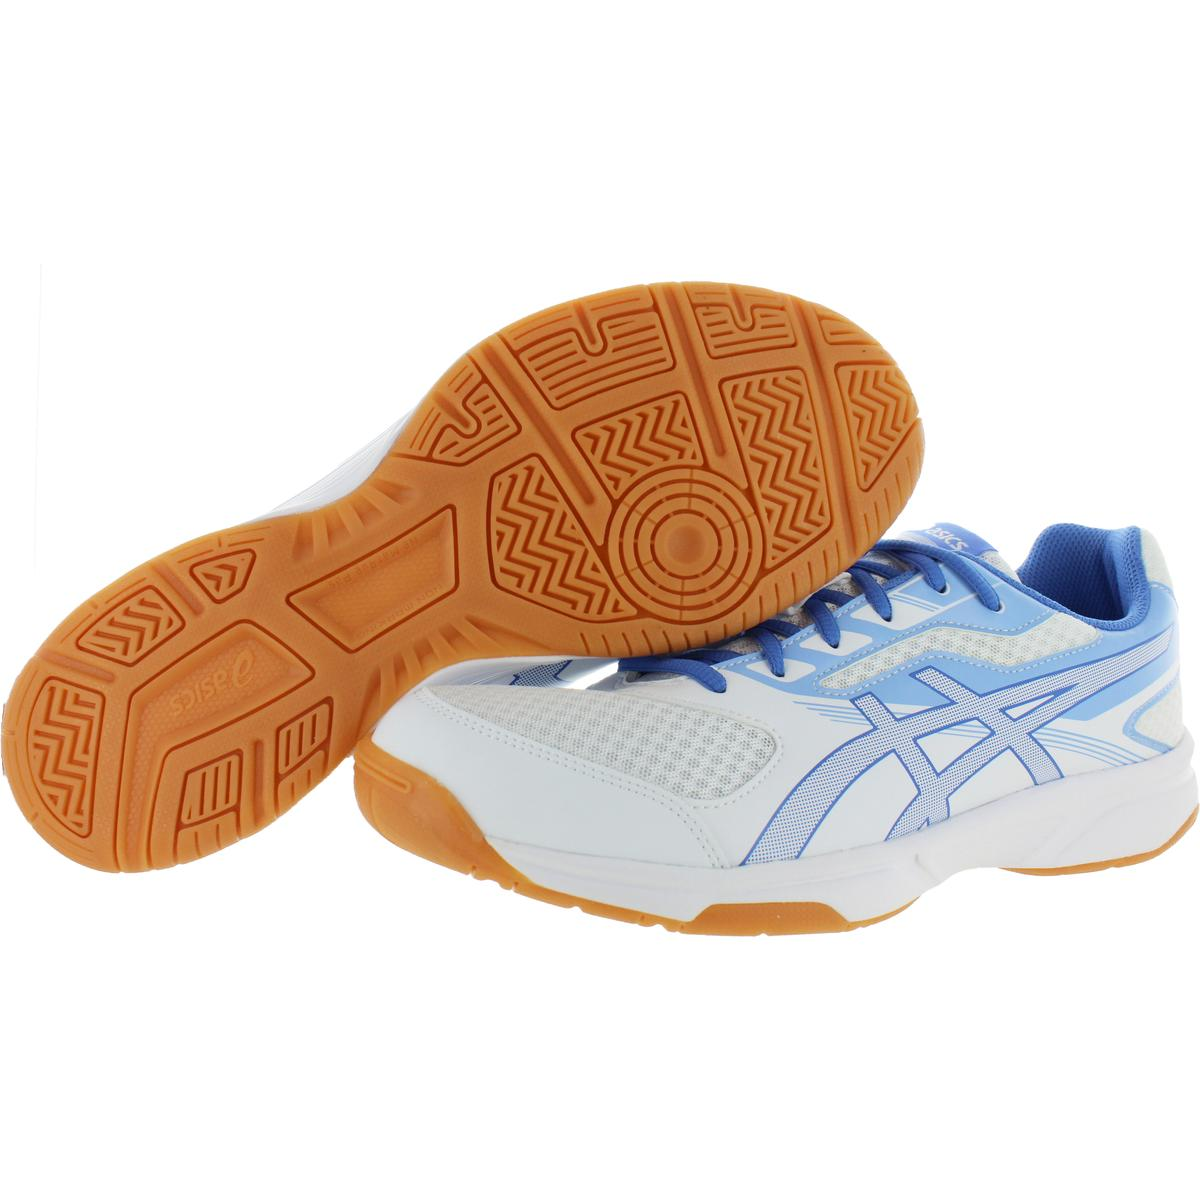 Asics-Womens-Upcourt-2-Low-Top-Trainers-Volleyball-Shoes-Sneakers-BHFO-5028 thumbnail 6